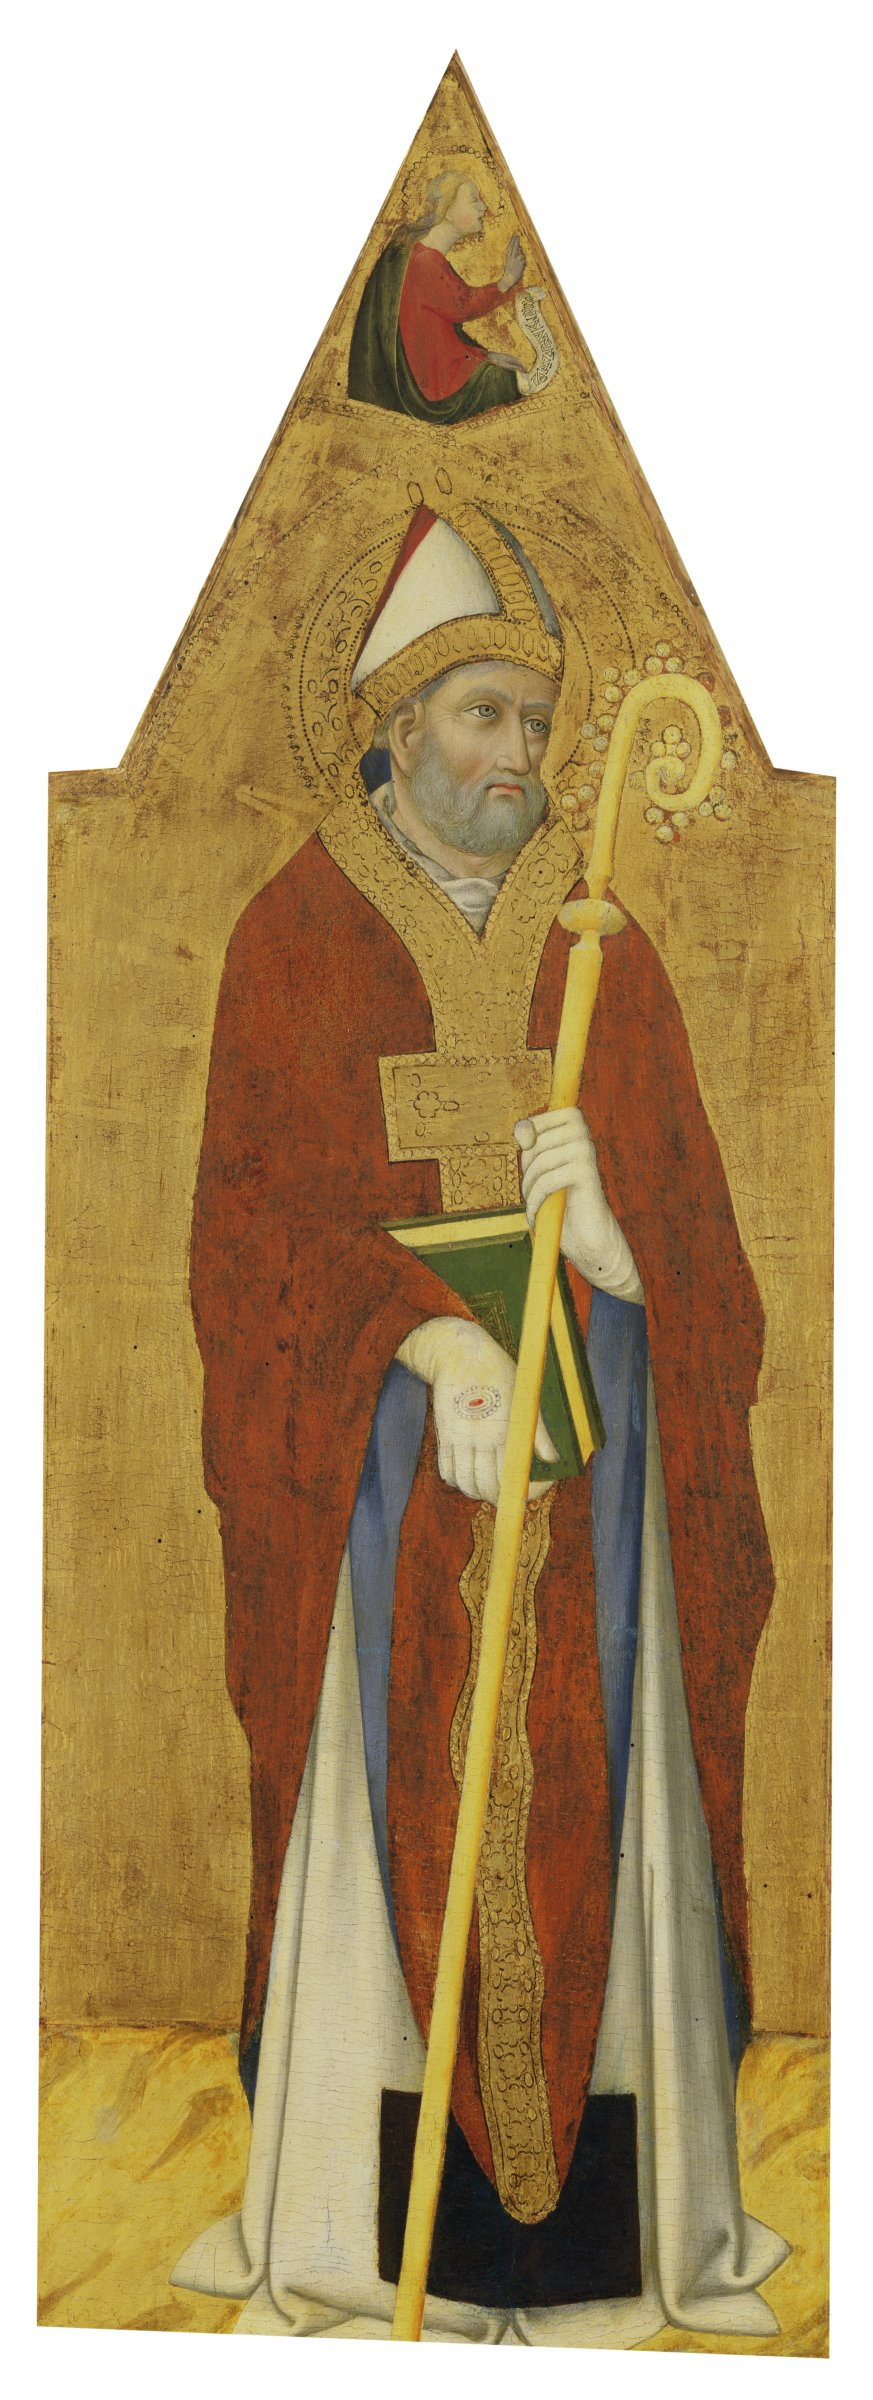 In this narrow, vertical painting, Saint Augustine stands holding a book and a crosier. Above his head hovers the angel Gabriel, who is speaking to the Virgin Mary in the companion painting of Saint Benedict.